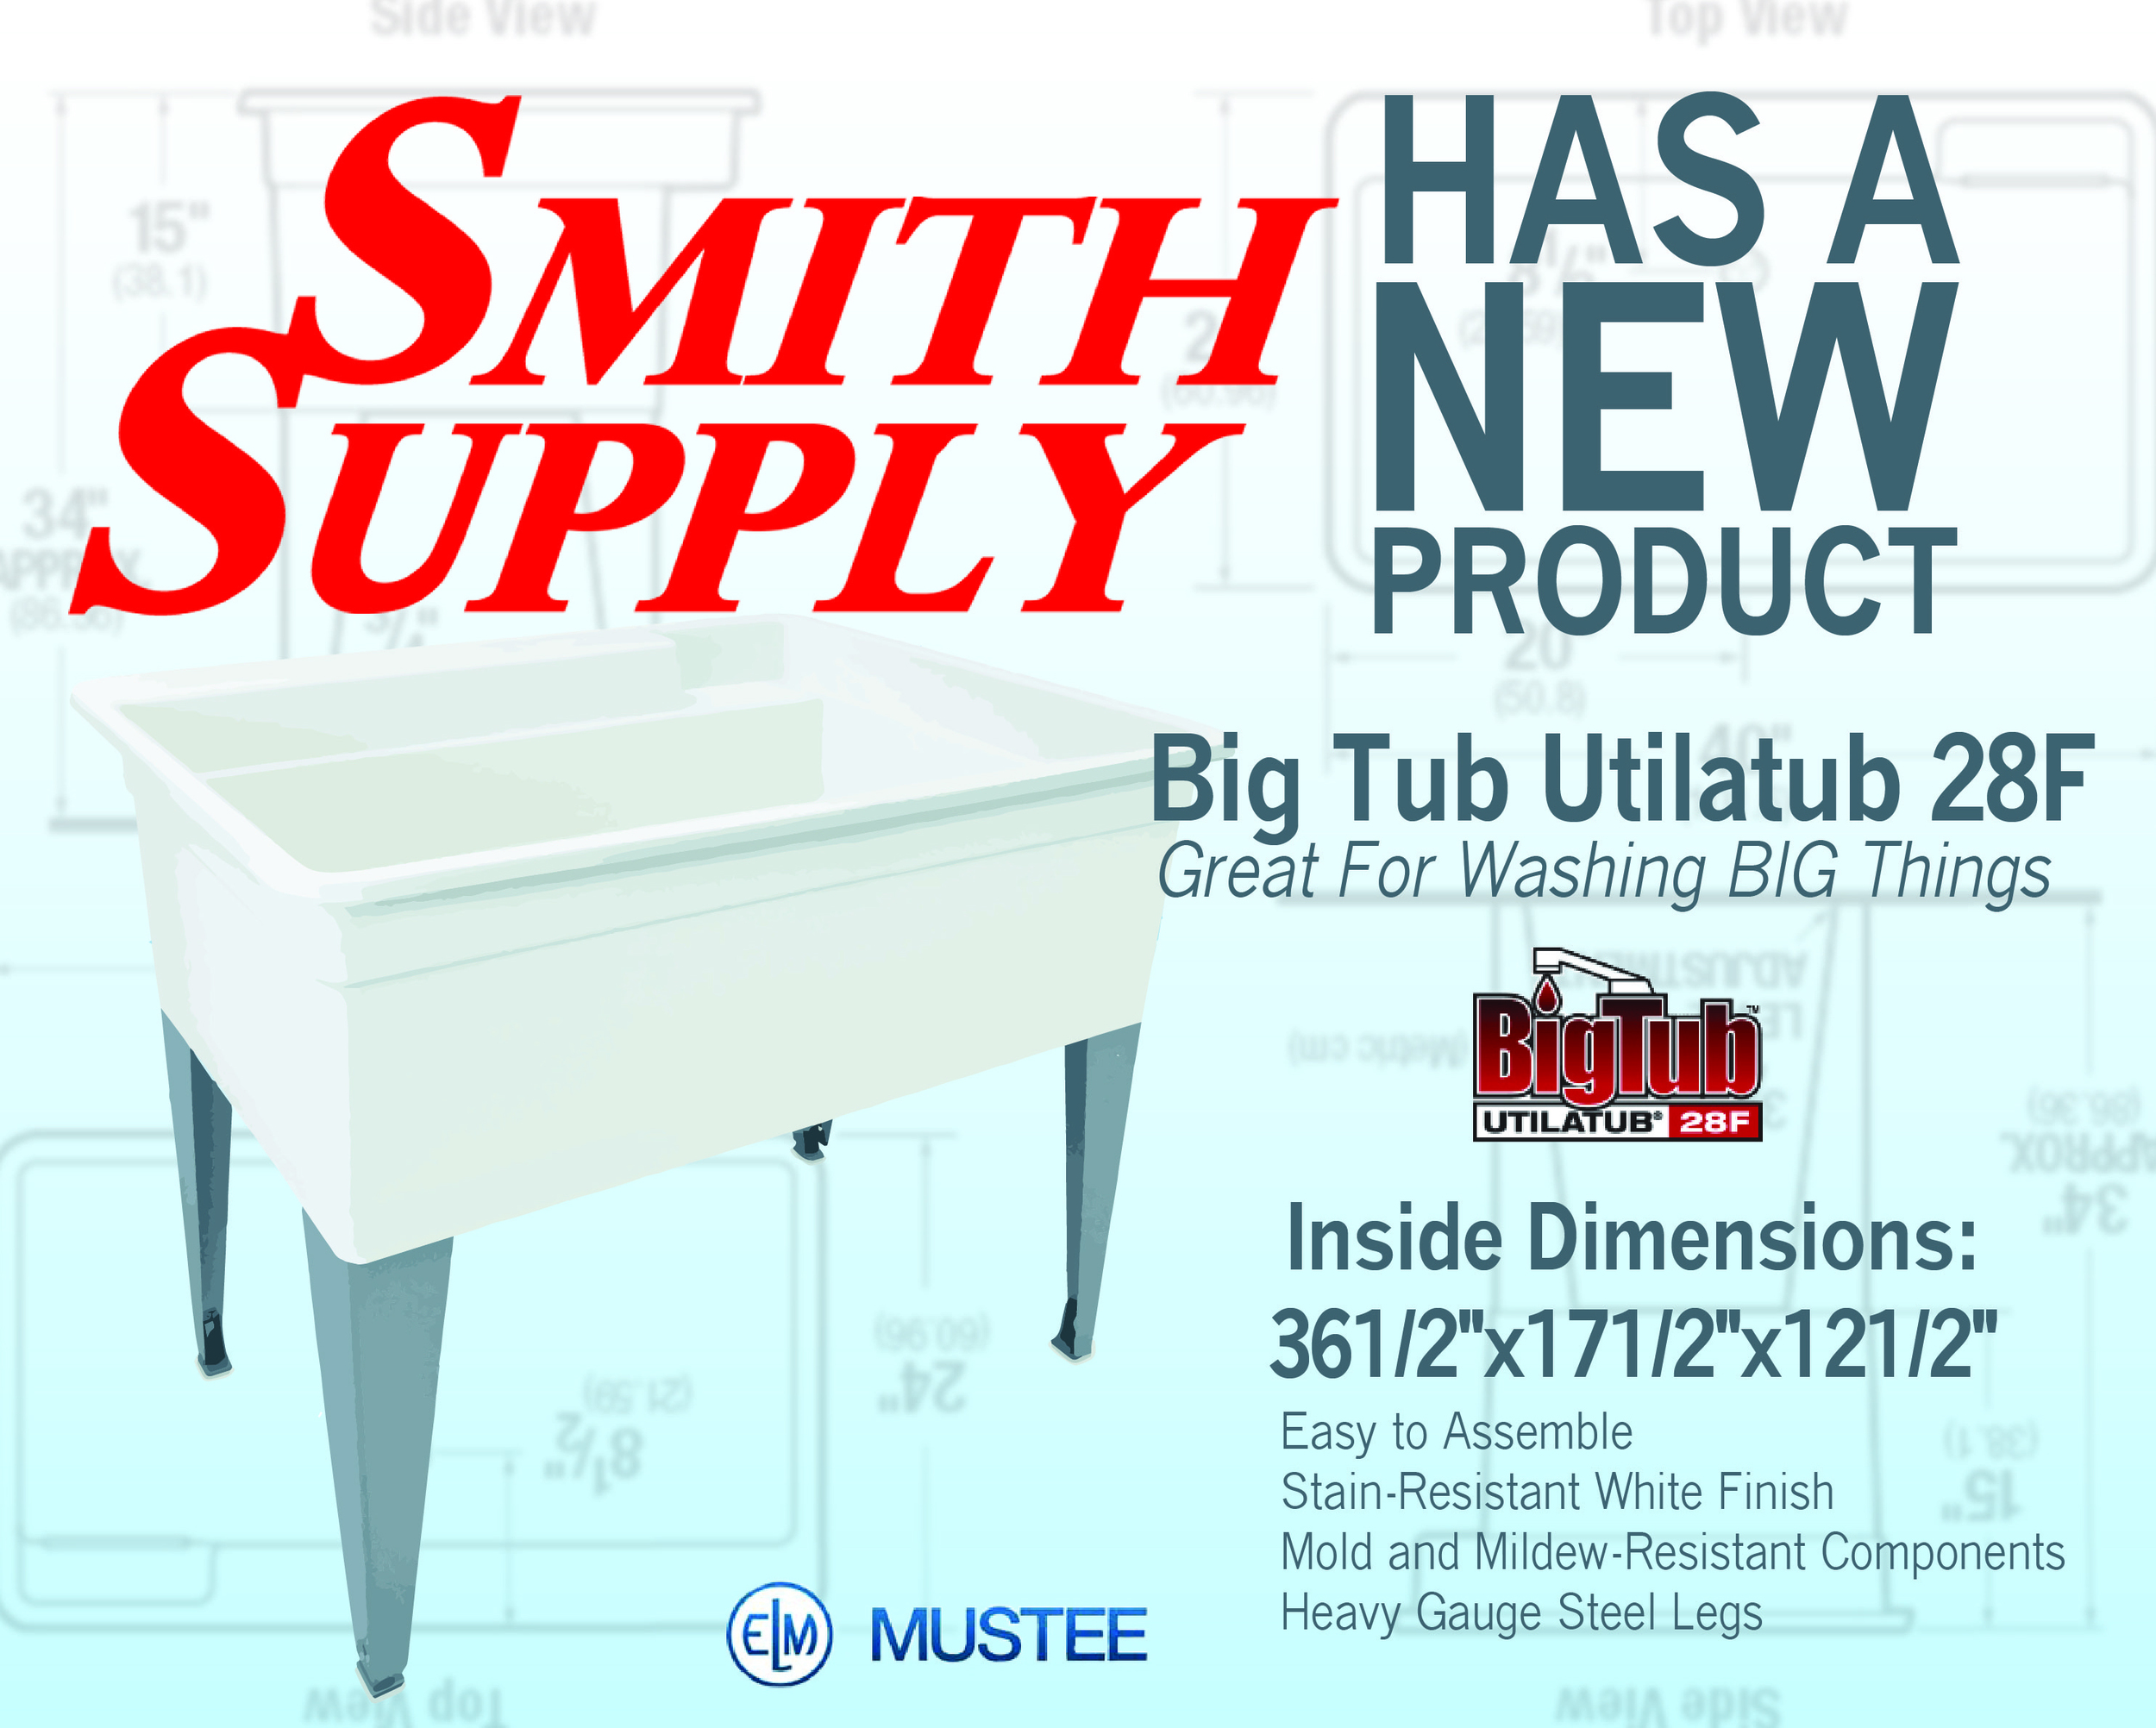 http://www.mustee.com/product-lines/laundry-utility-tubs/28F.html   Specification Sheet:   http://www.mustee.com/product-lines/laundry-utility-tubs/downloads/pdf/28F.pdf